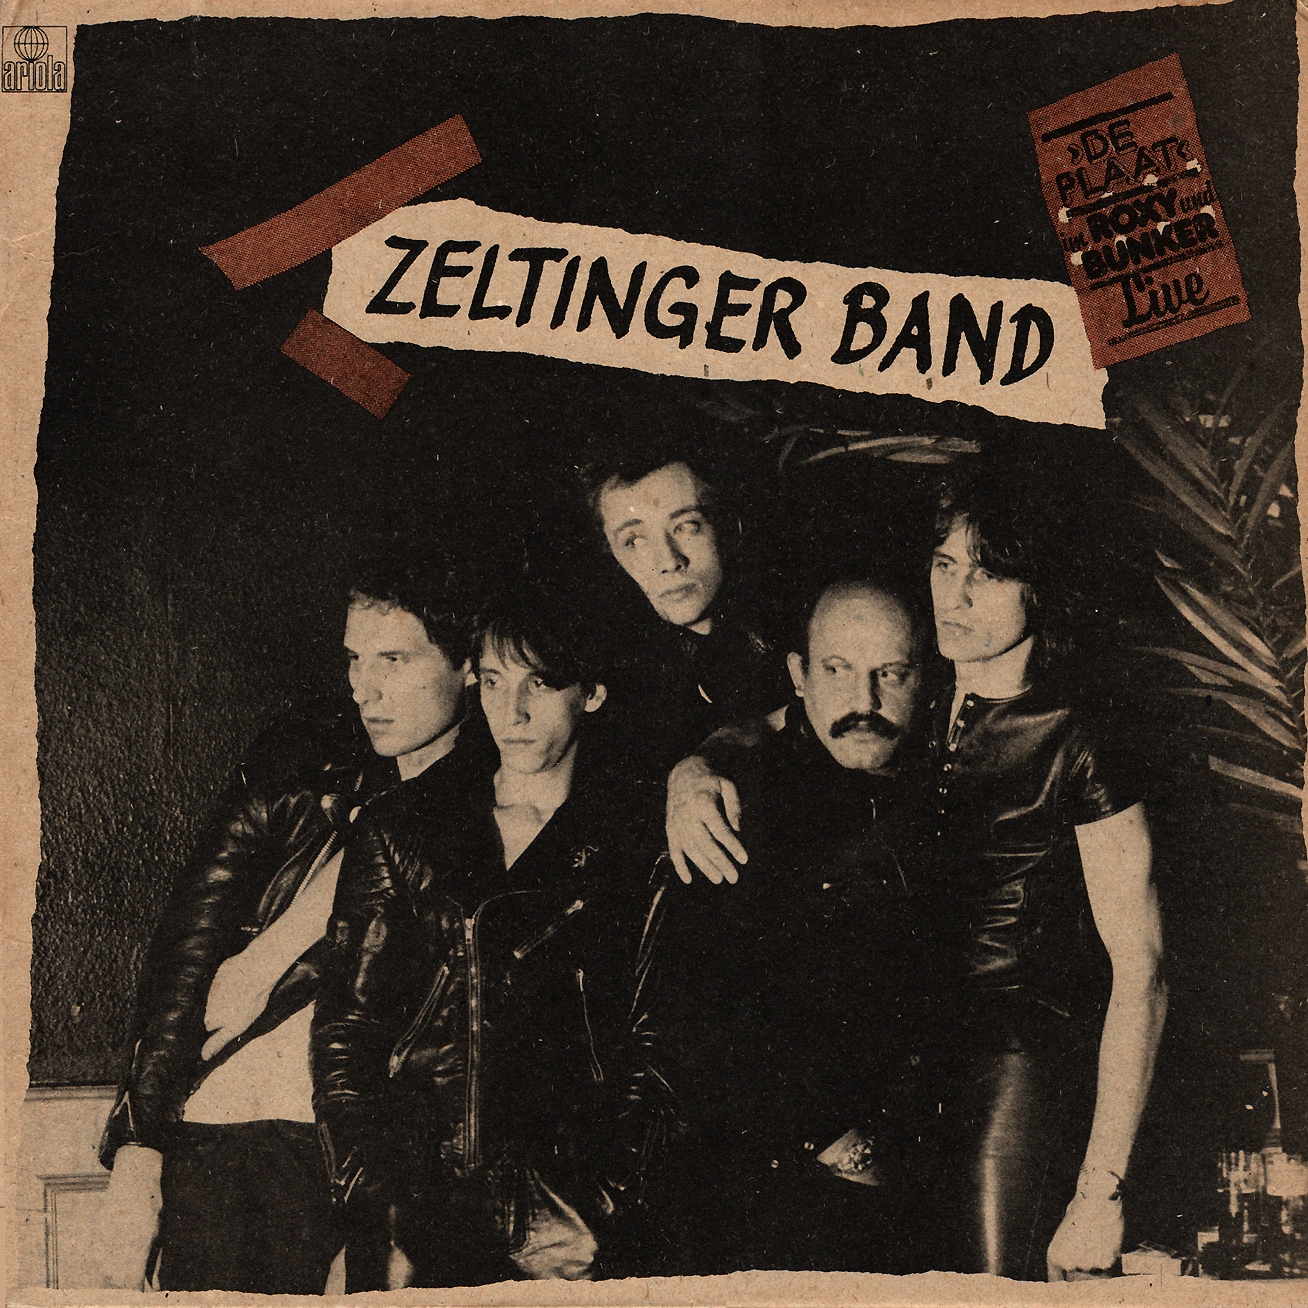 ZELTINGER BAND